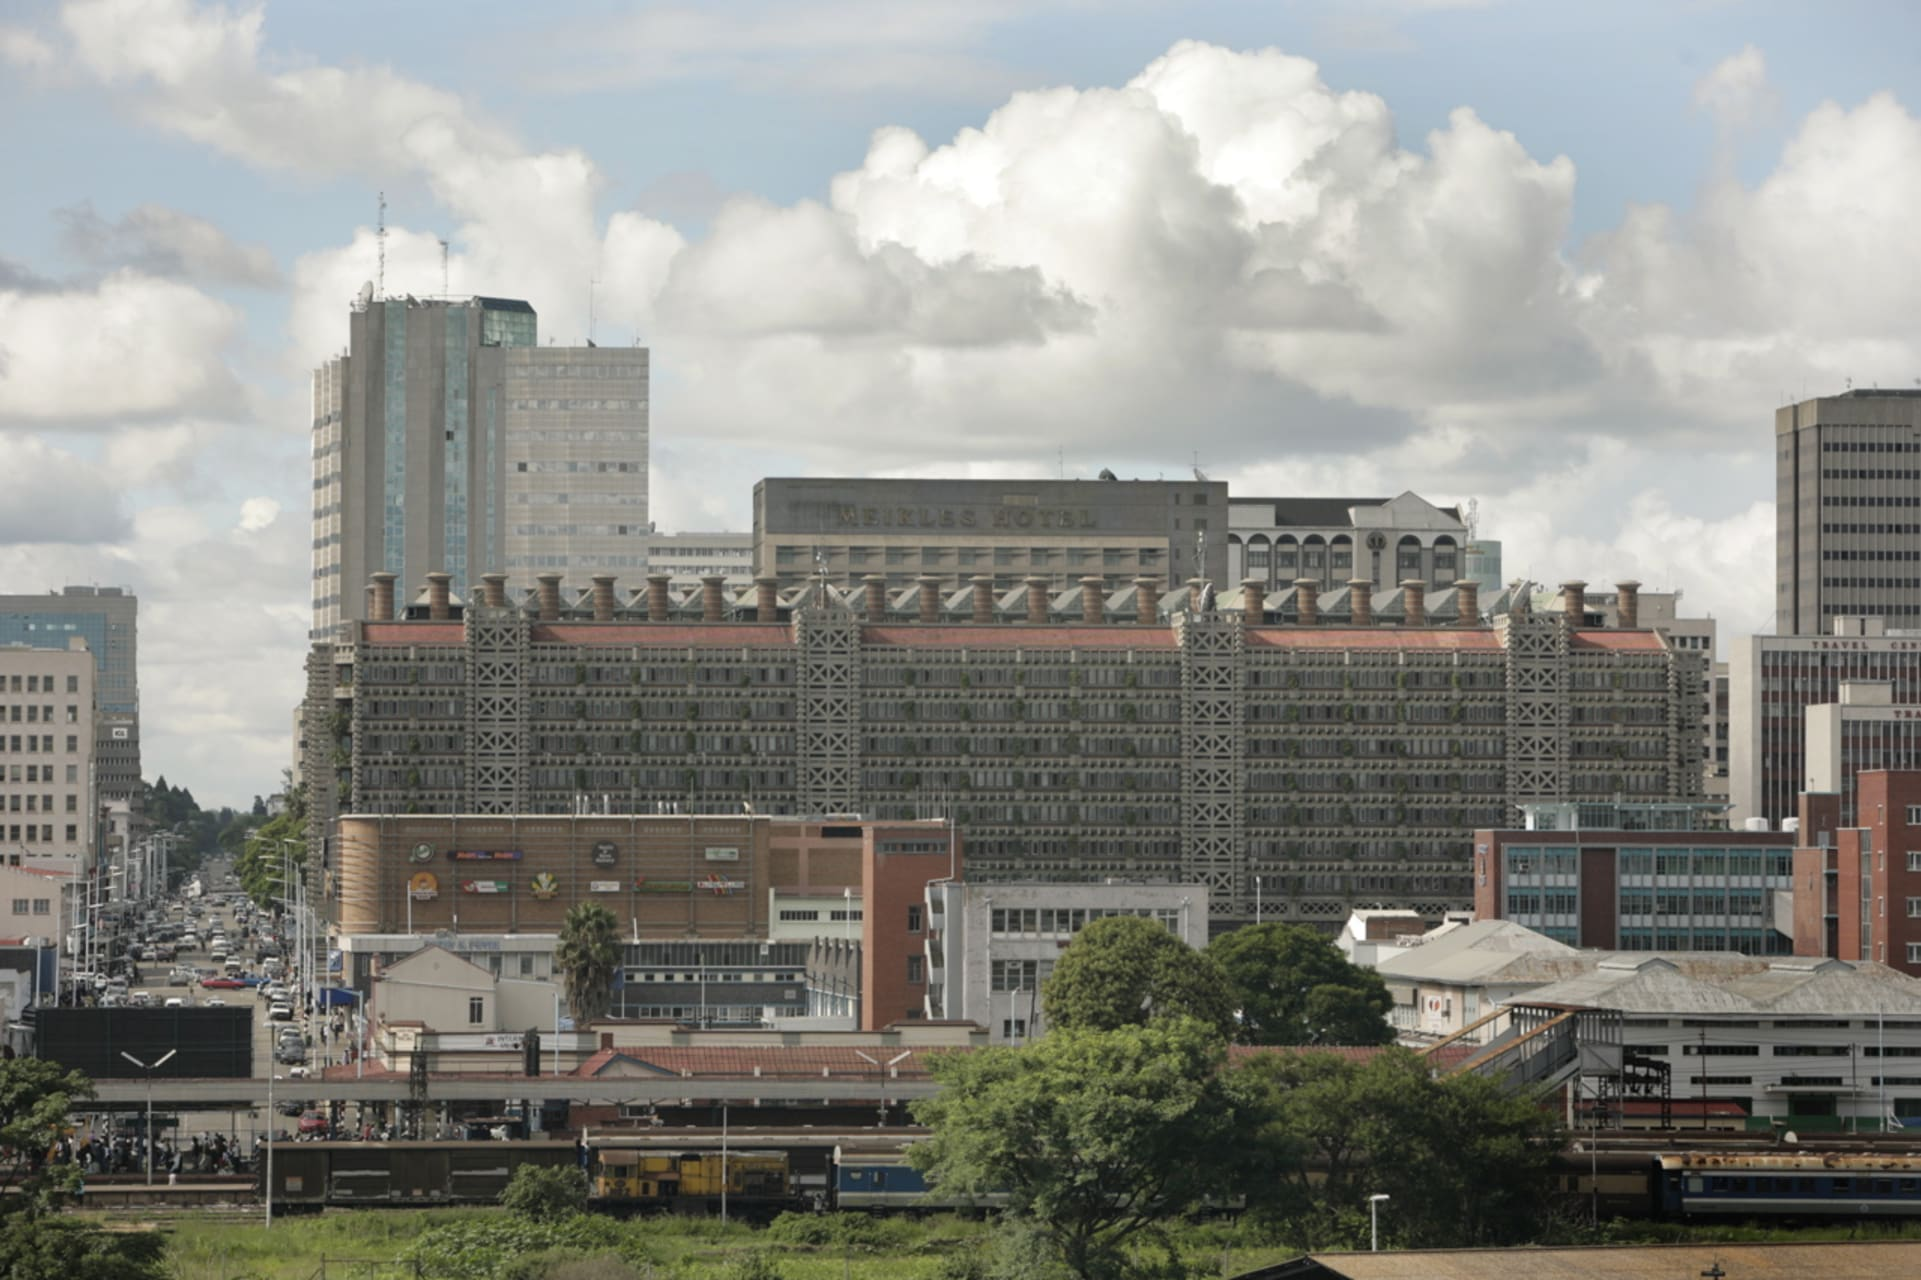 Harare - Exclusive Interview with award winning Zimbabwean Architect Mick Pearce